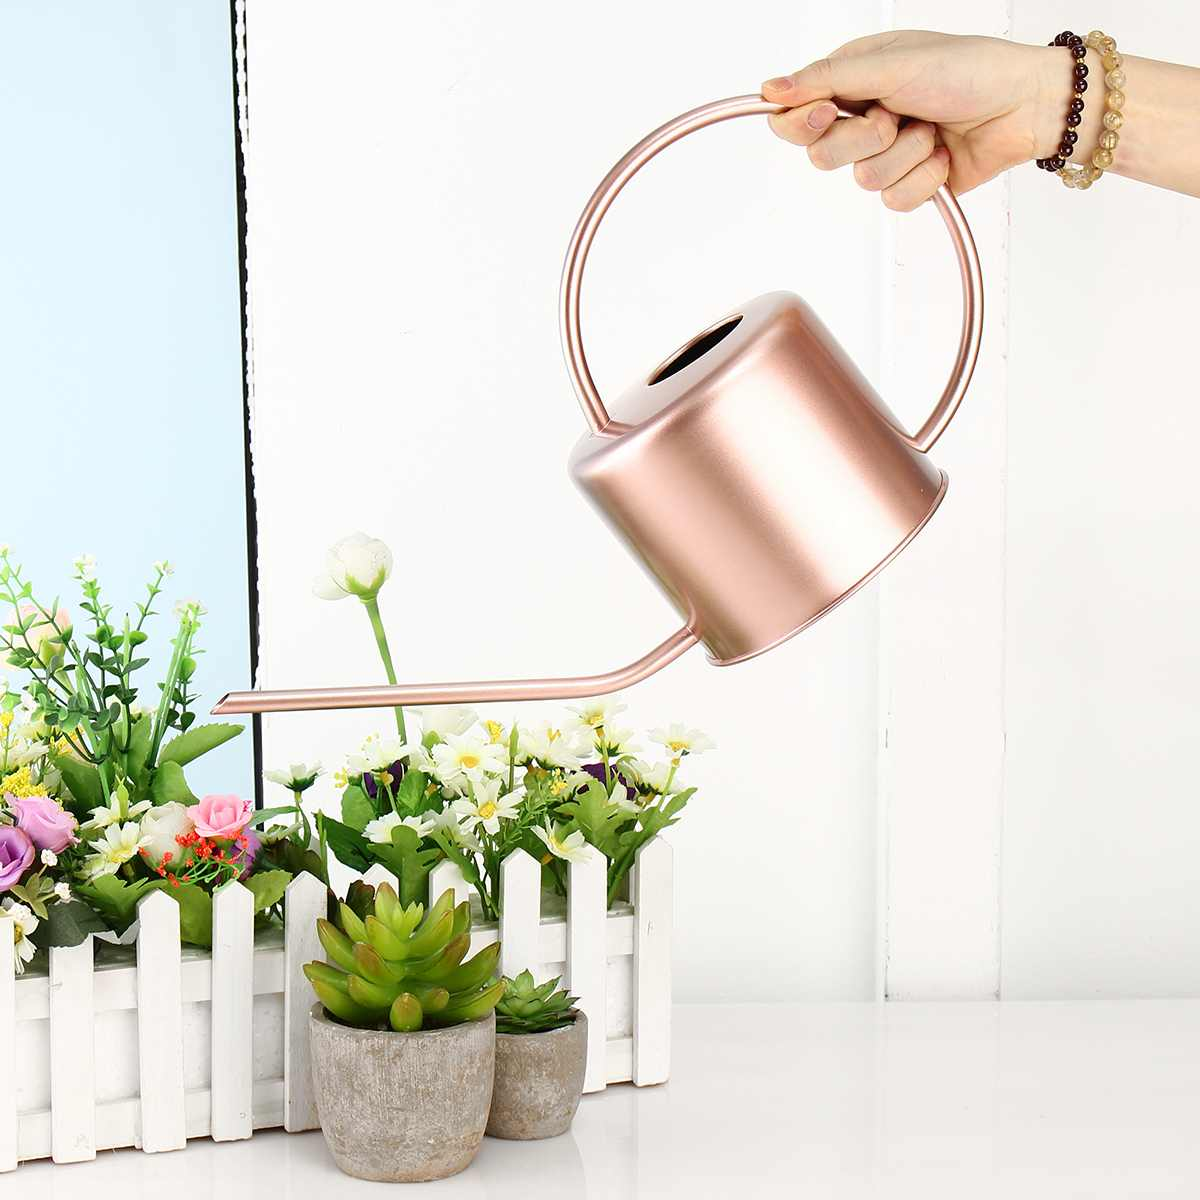 Watering-Can Flower Mouth-Garden-Tool Stainless-Steel Long Metal for Home Easy-Use-Handle